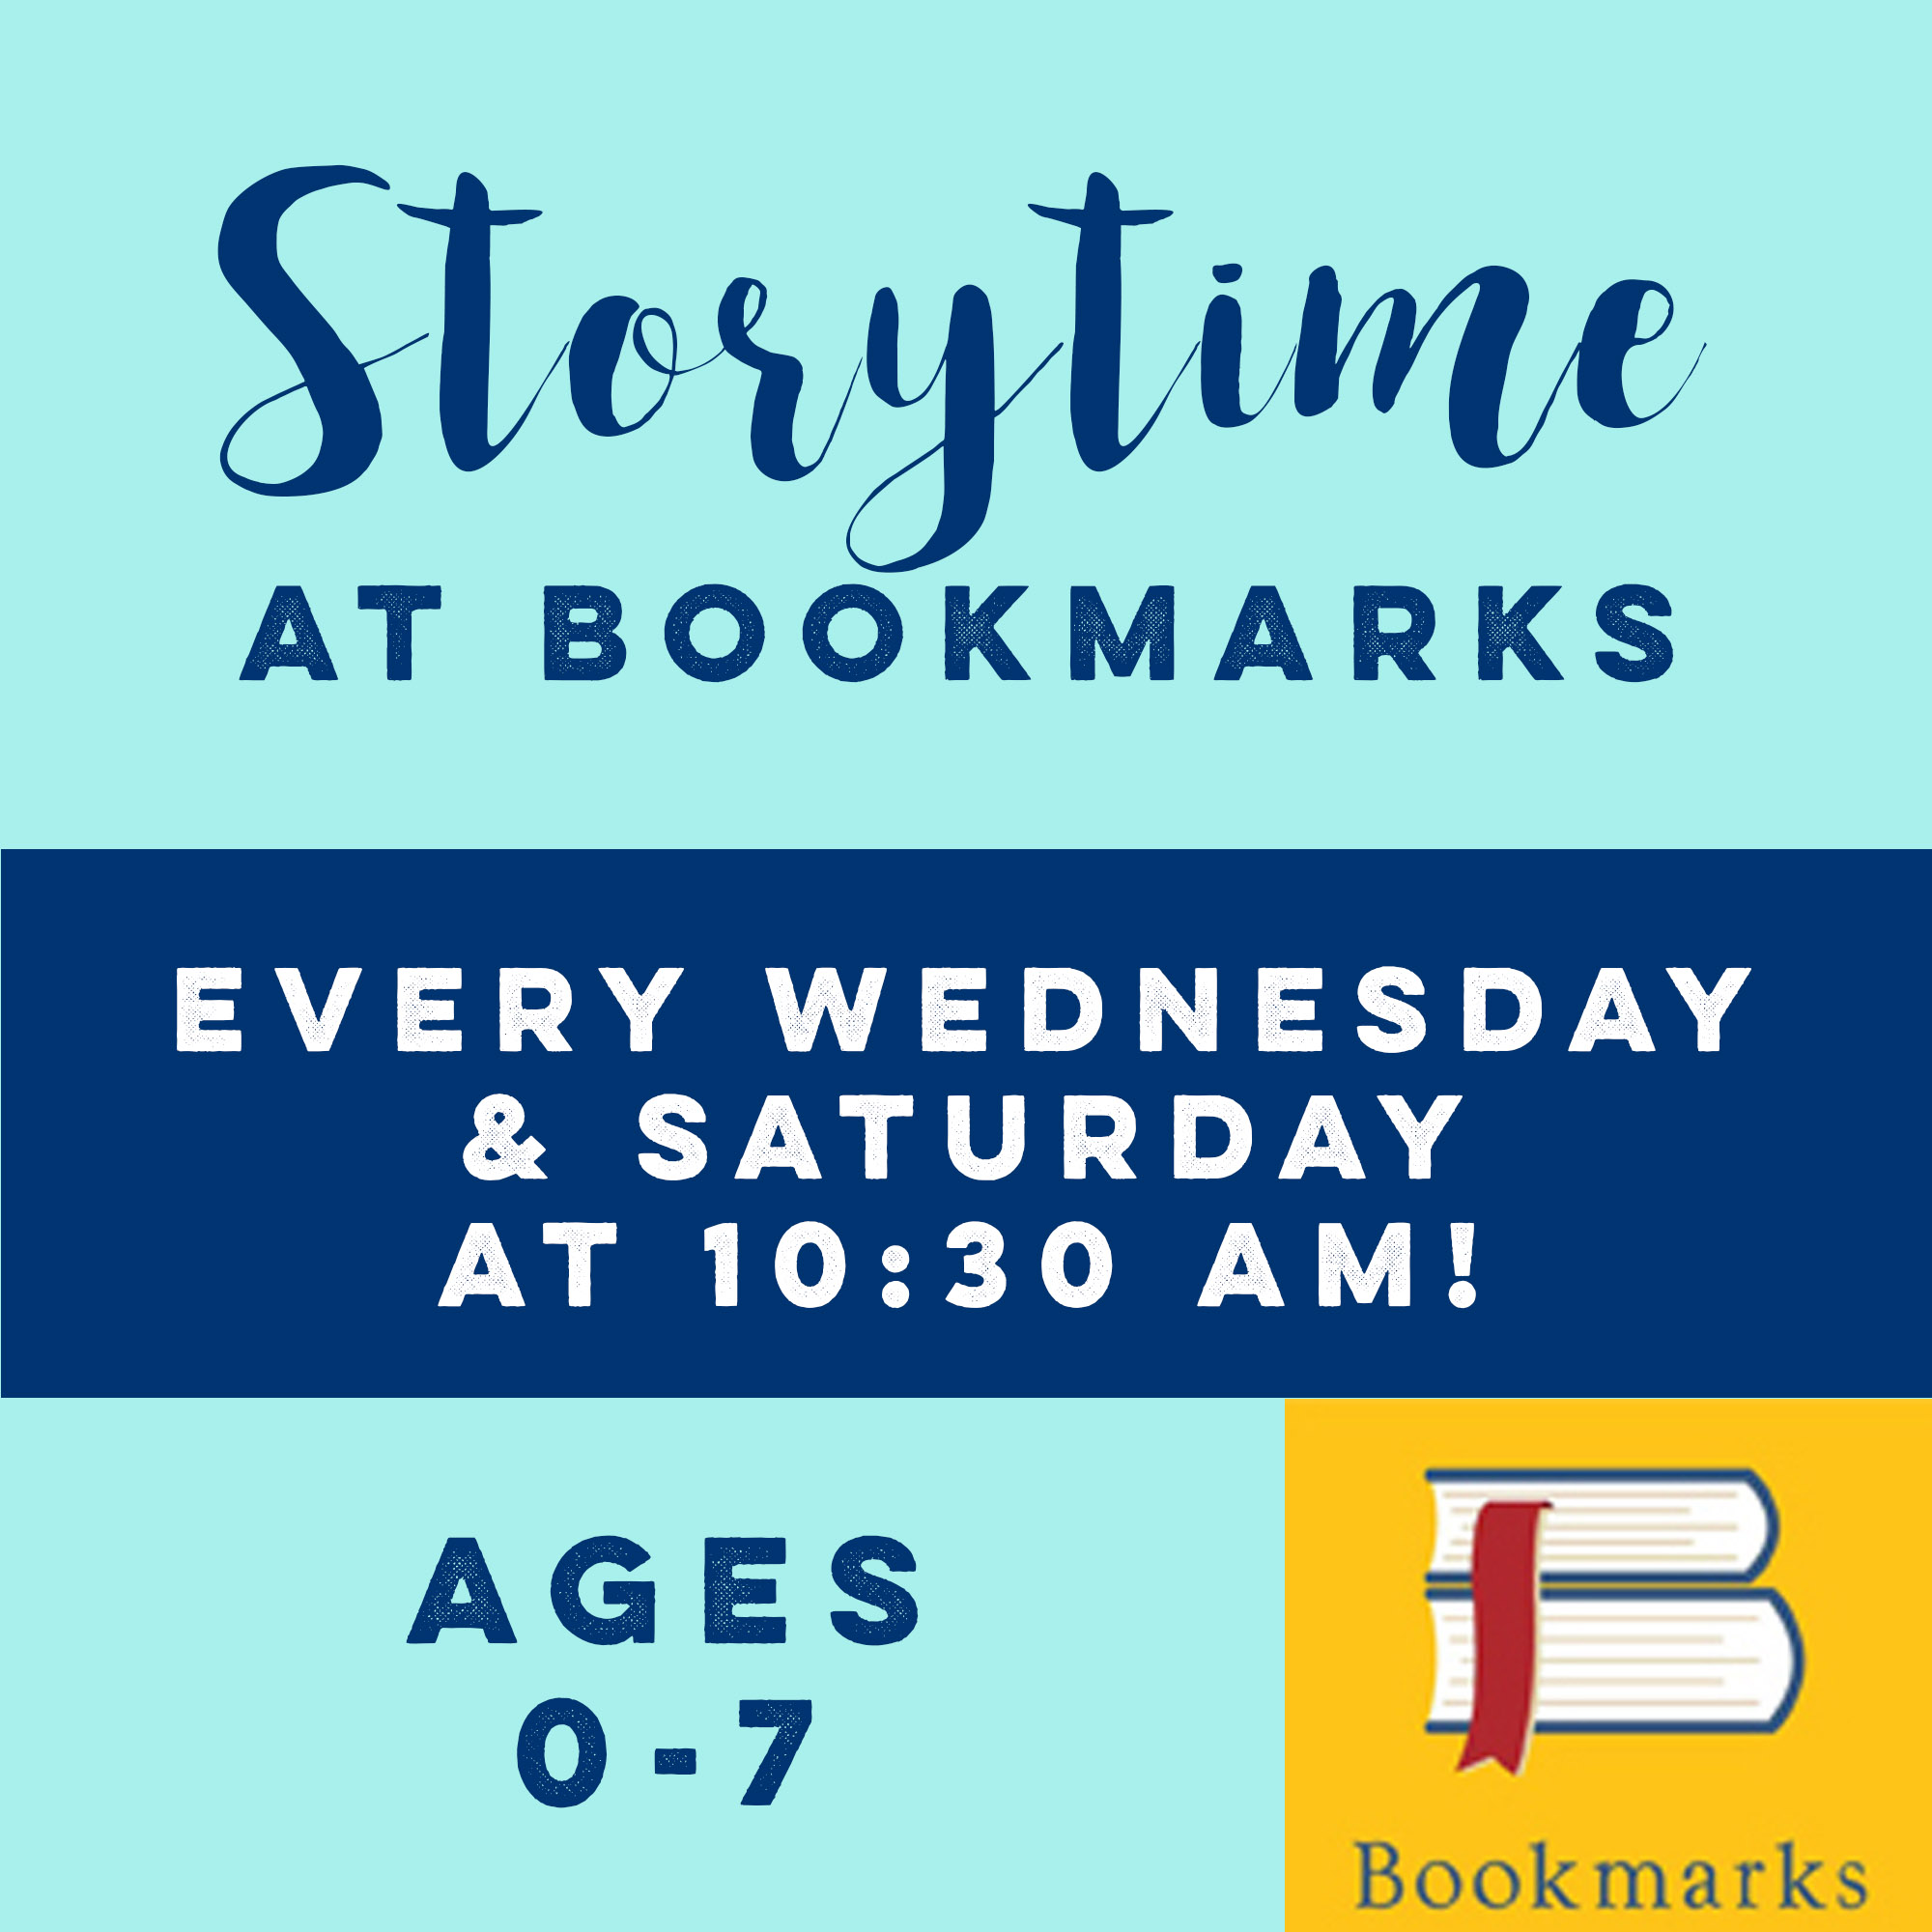 Storytime with Children's Author Sharon Chriscoe